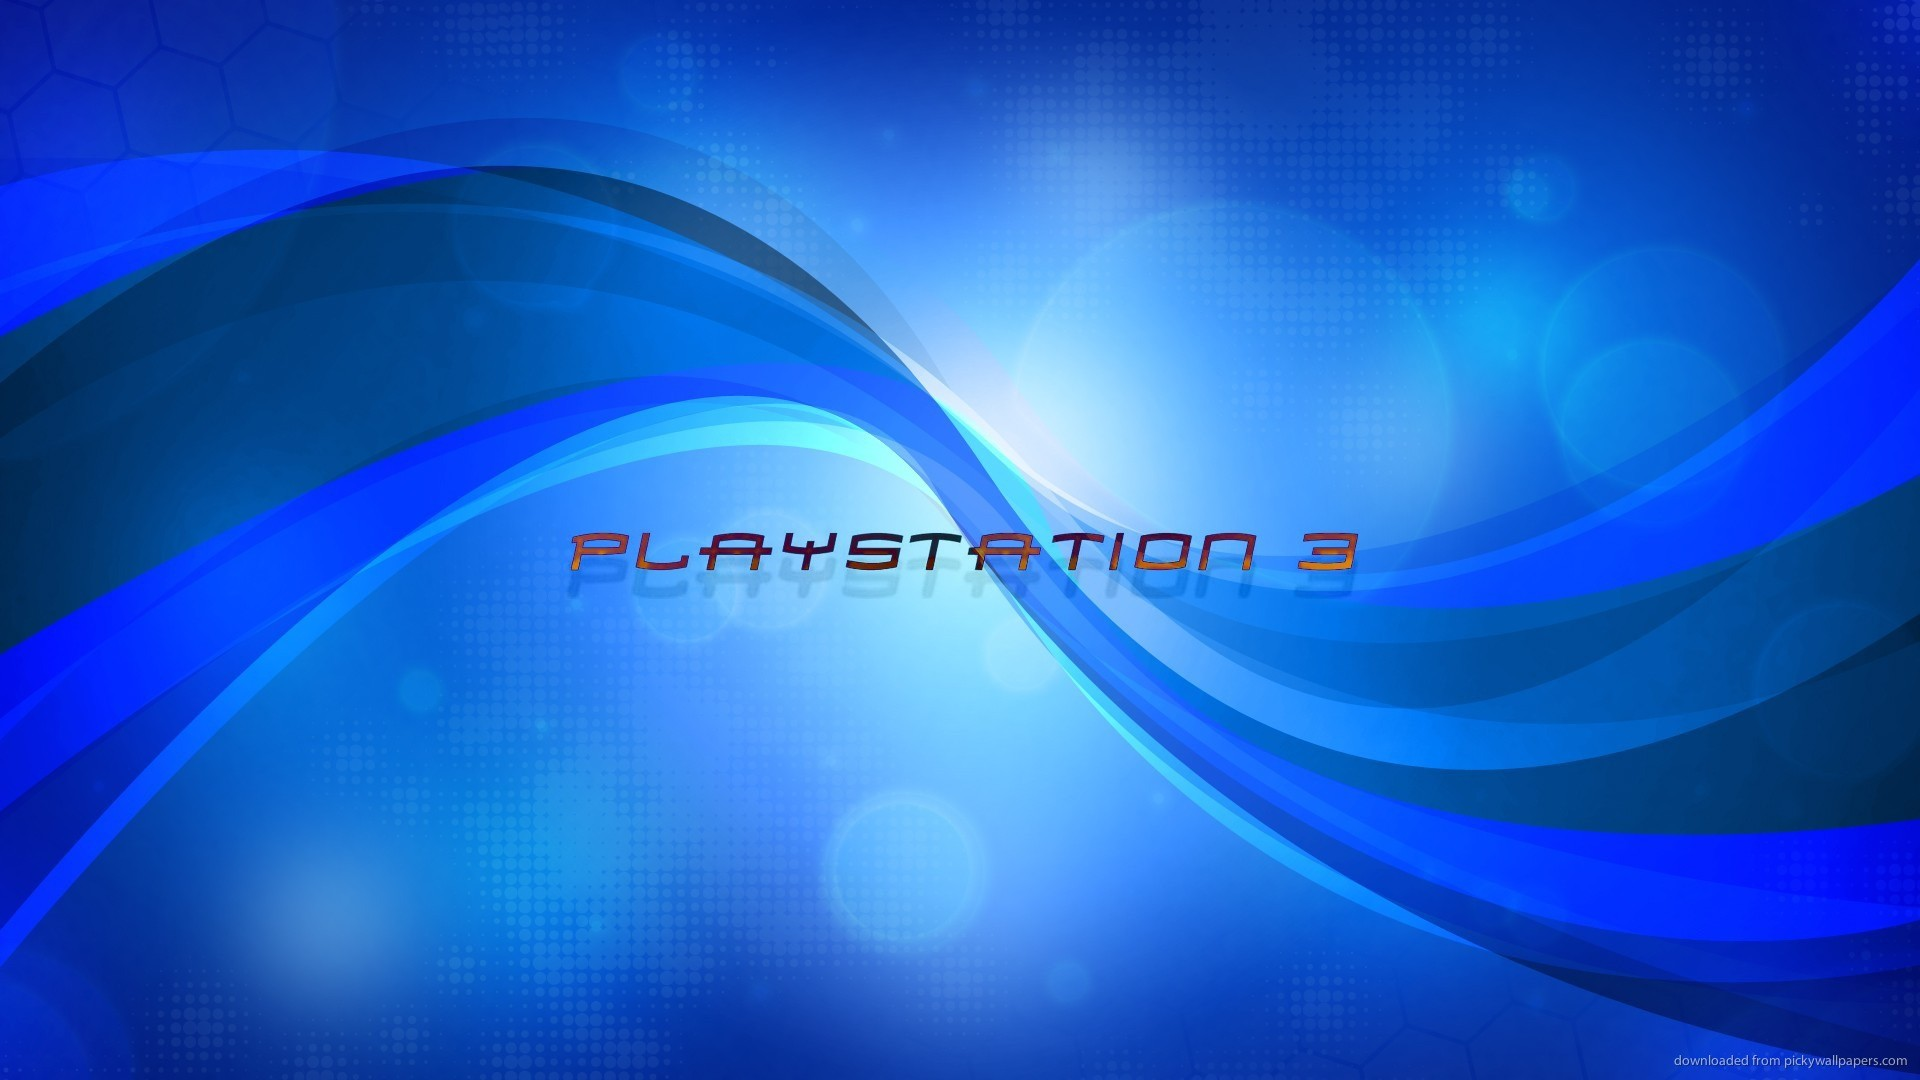 1920x1080 Playstation 3 blue logo for